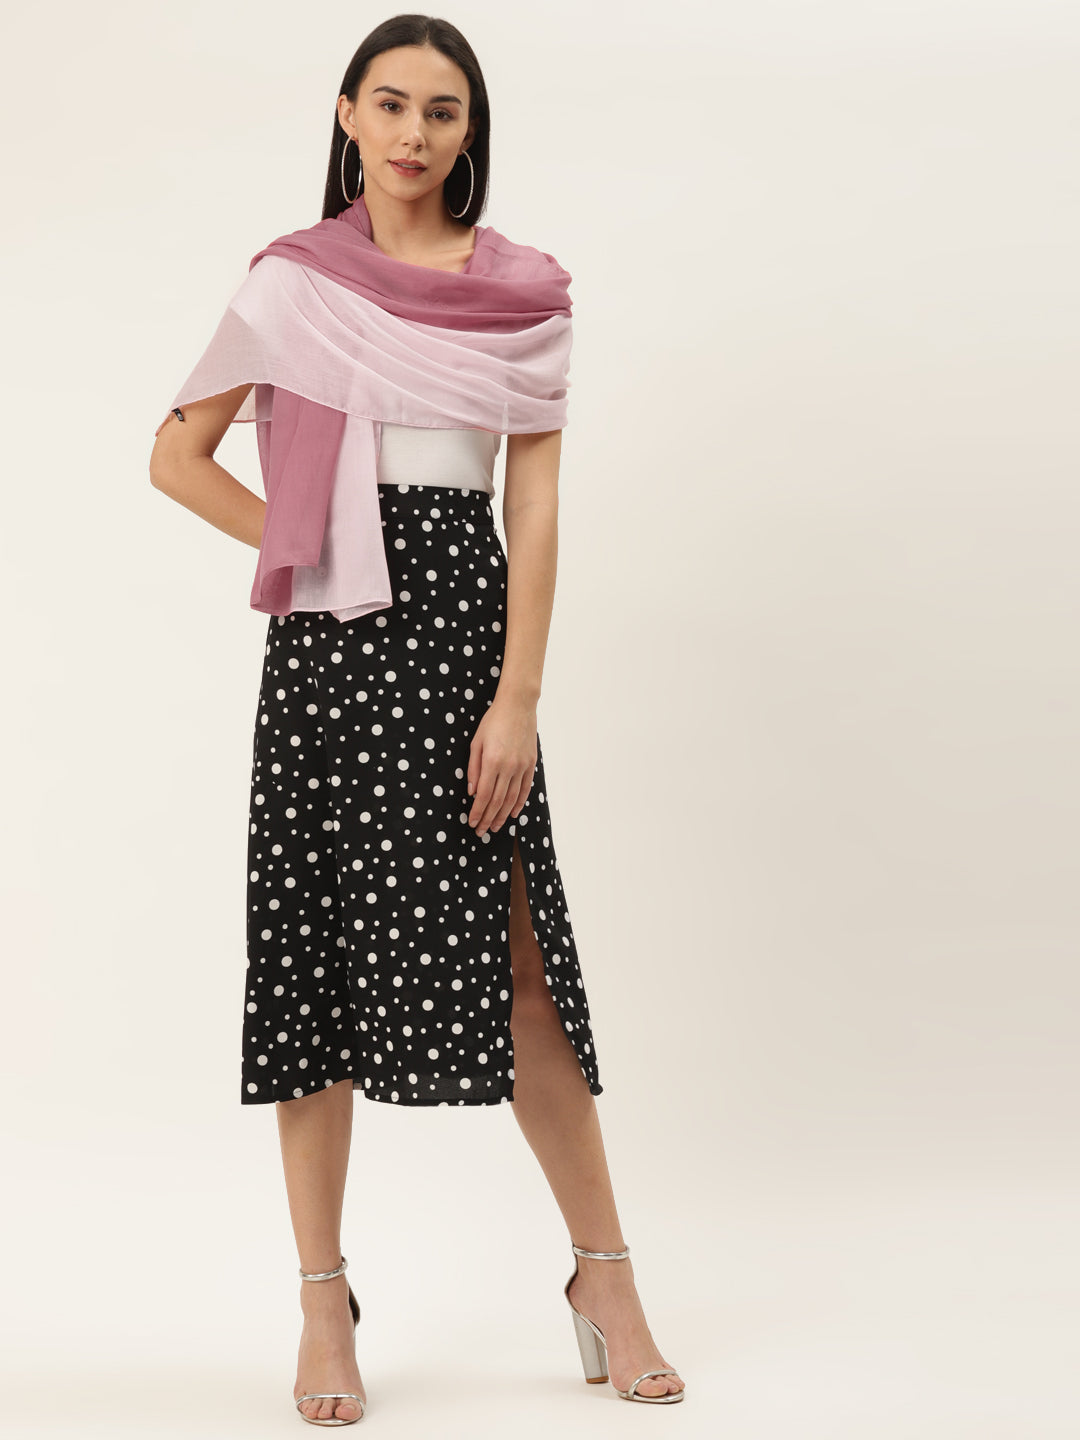 Two Shade Pink Scarf